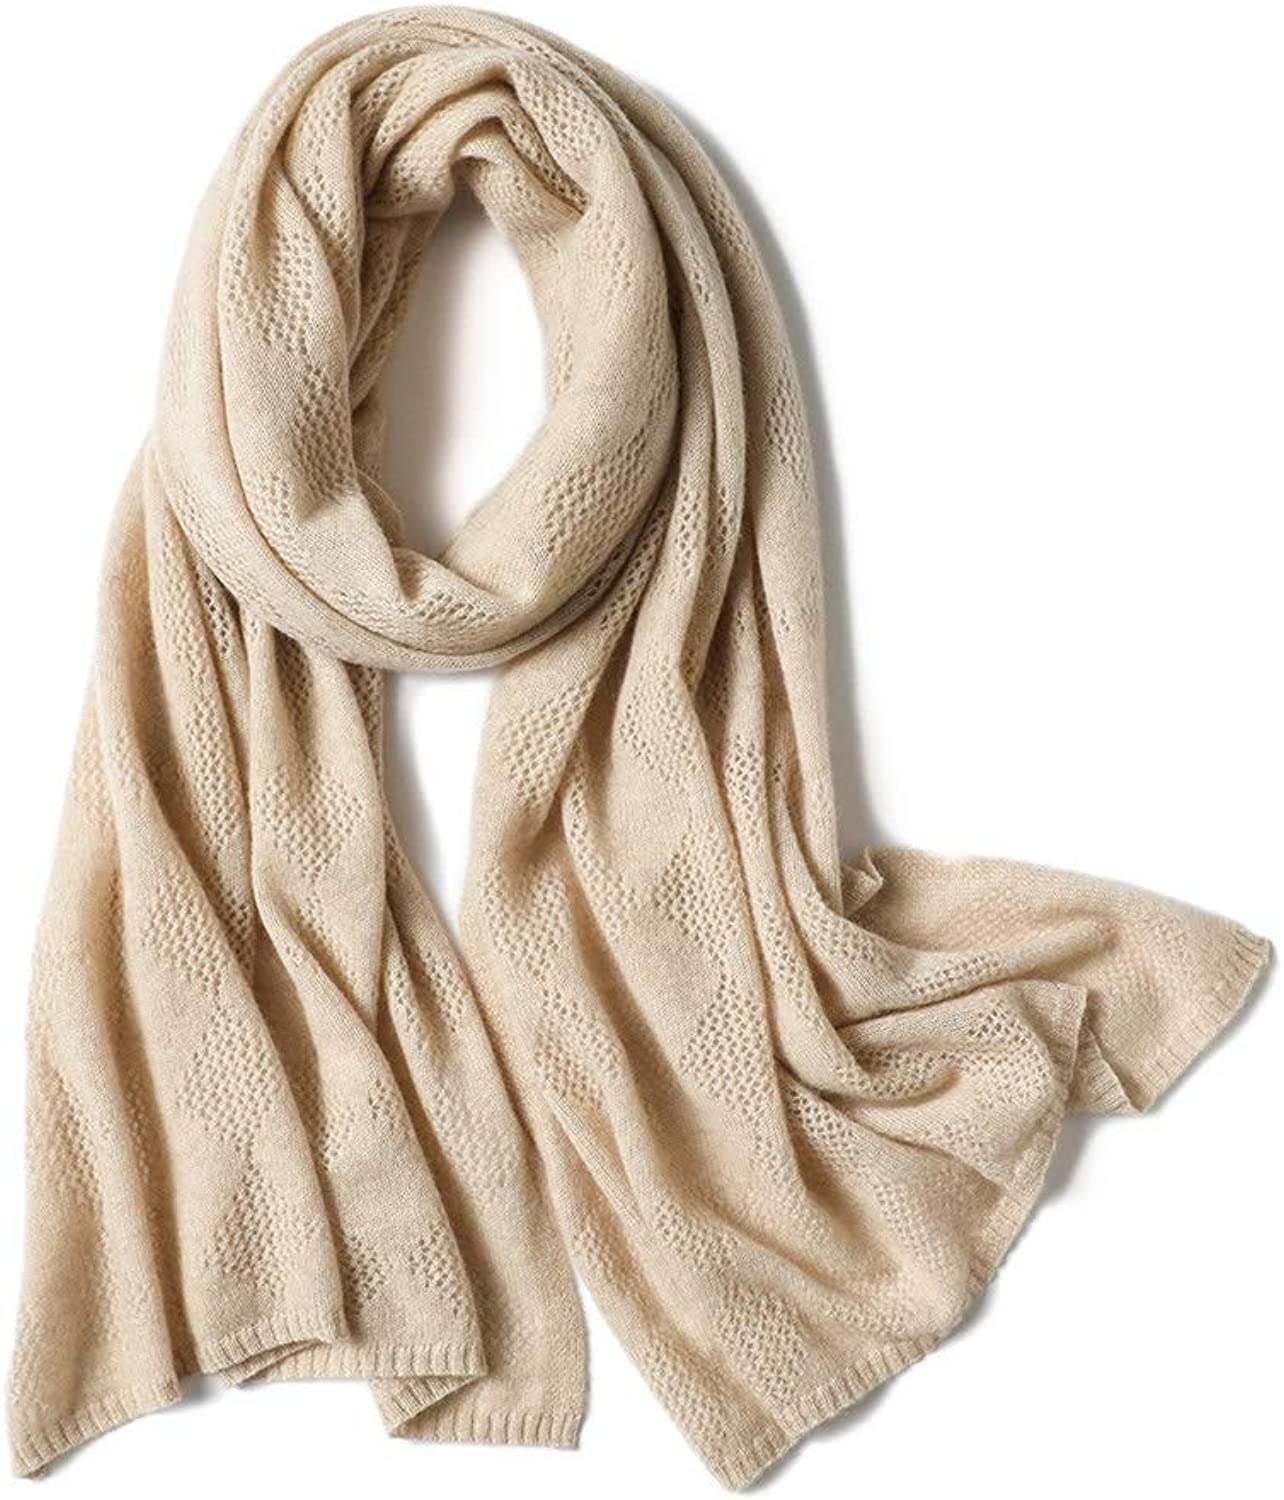 Women's Scarf Knit Thicken Solid color Cutout Warm Cape Wrap Body Scarf (color   Camel, Size   One Size)